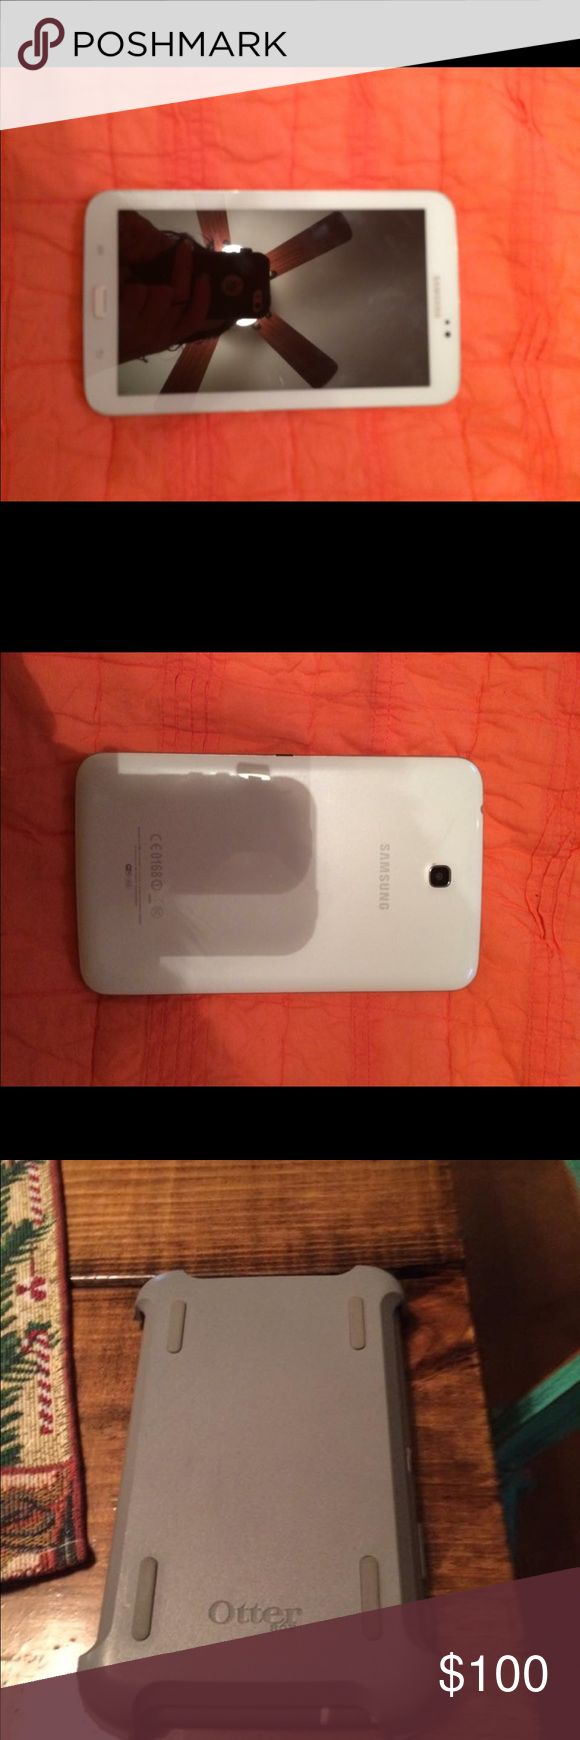 Galaxy note 3 tablet (TRADE) Like new! Comes w/charger & otterbox Other